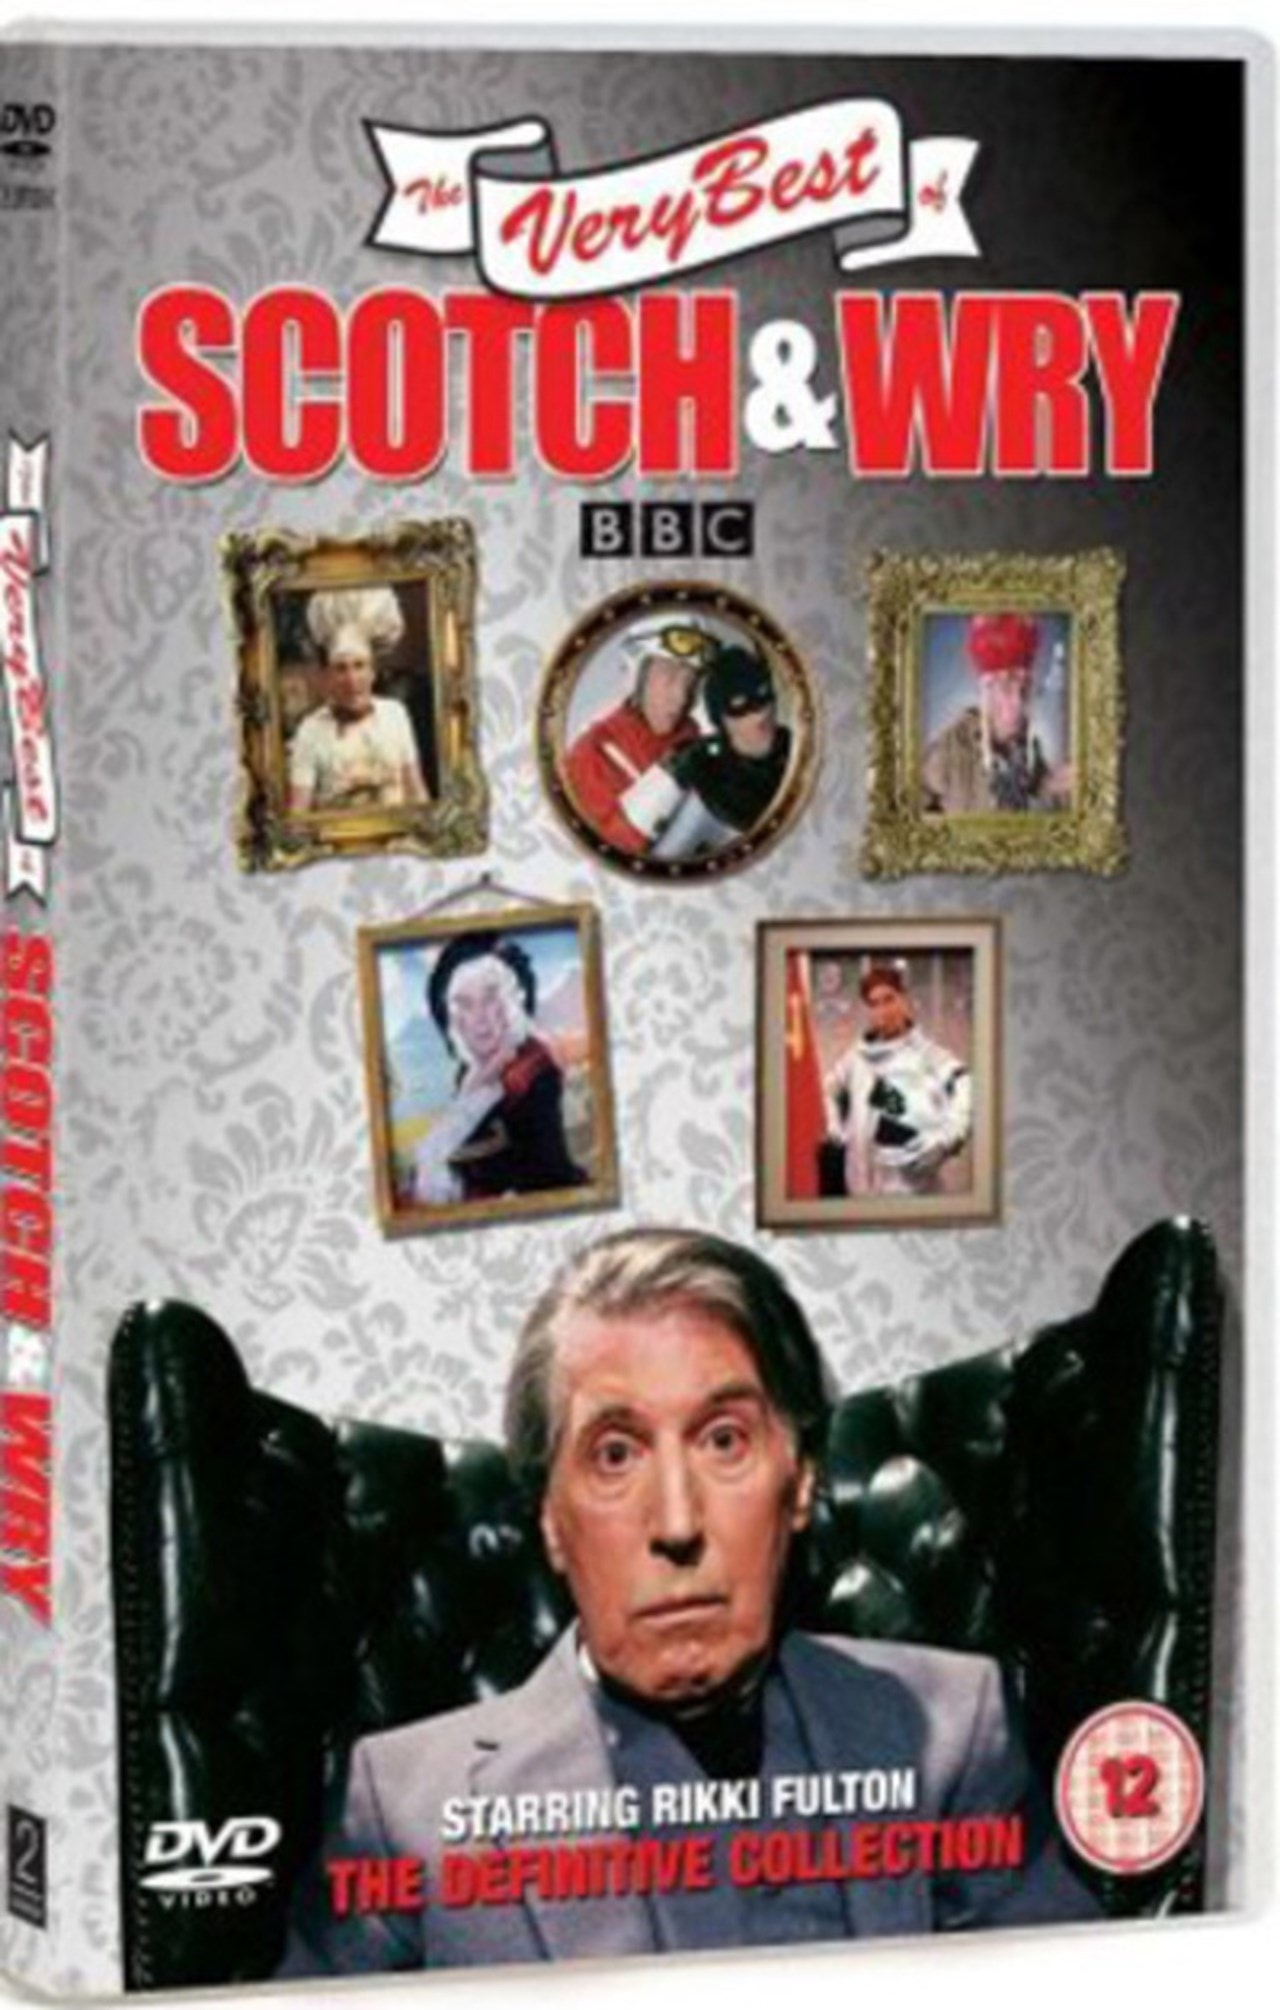 Scotch and Wry: The Very Best - 1